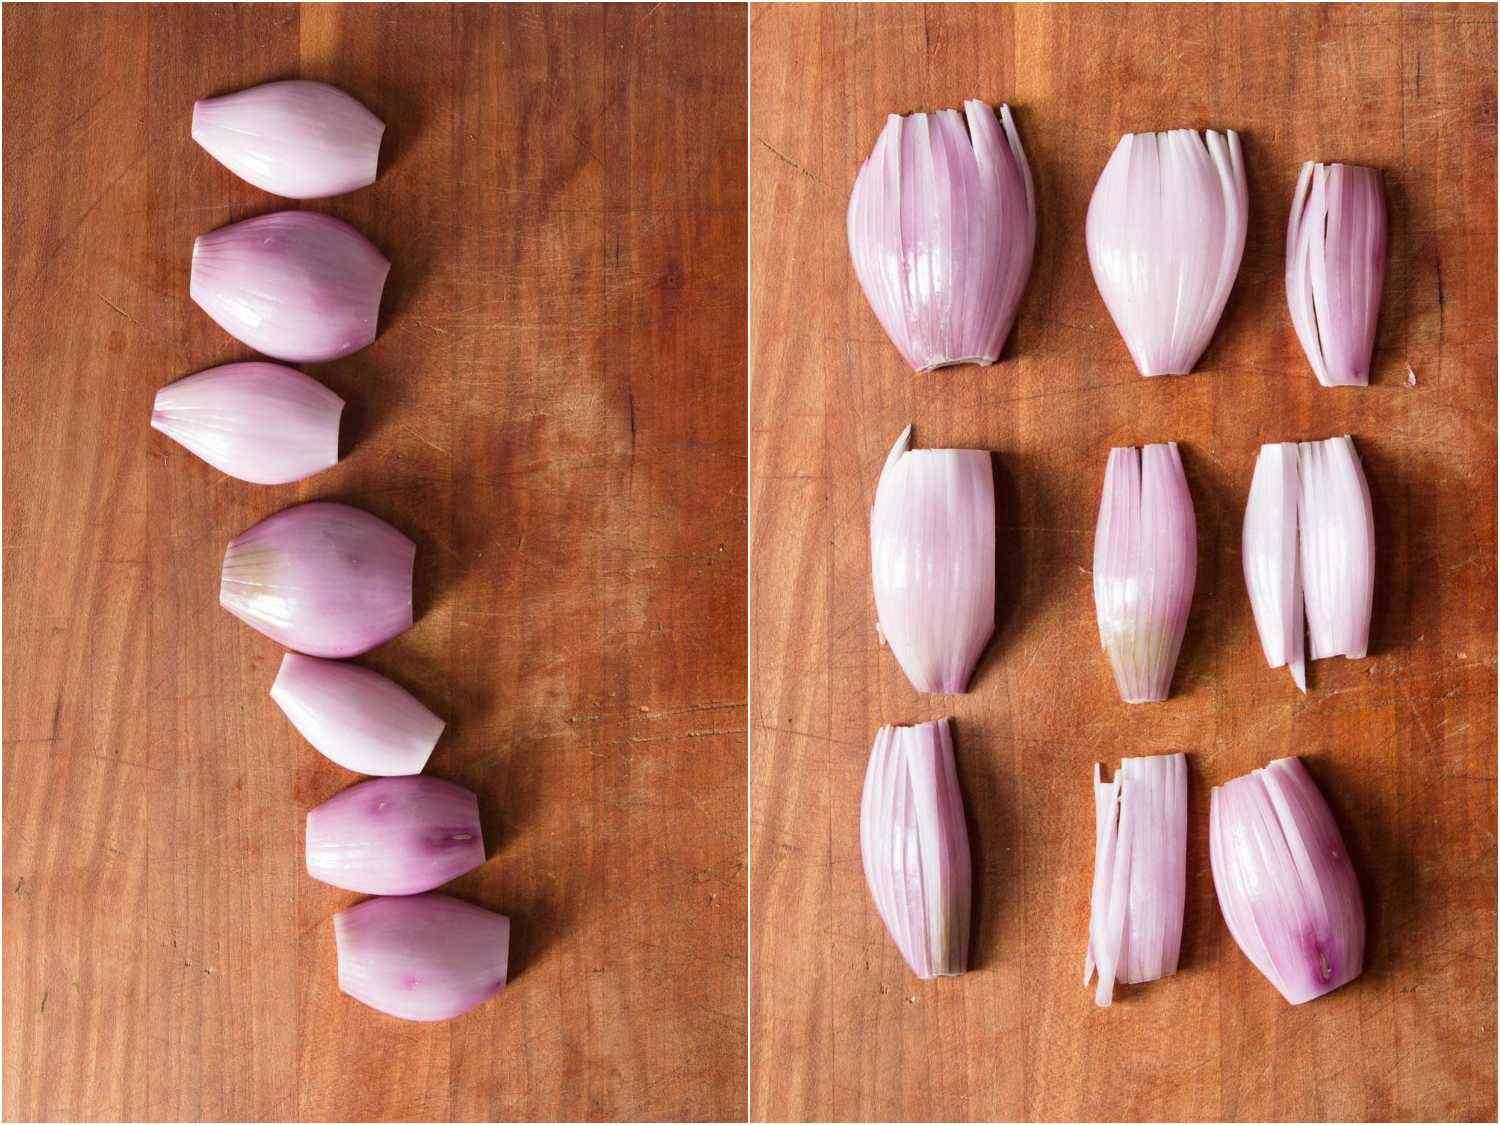 Shallot petals ready to be cut for mignonette